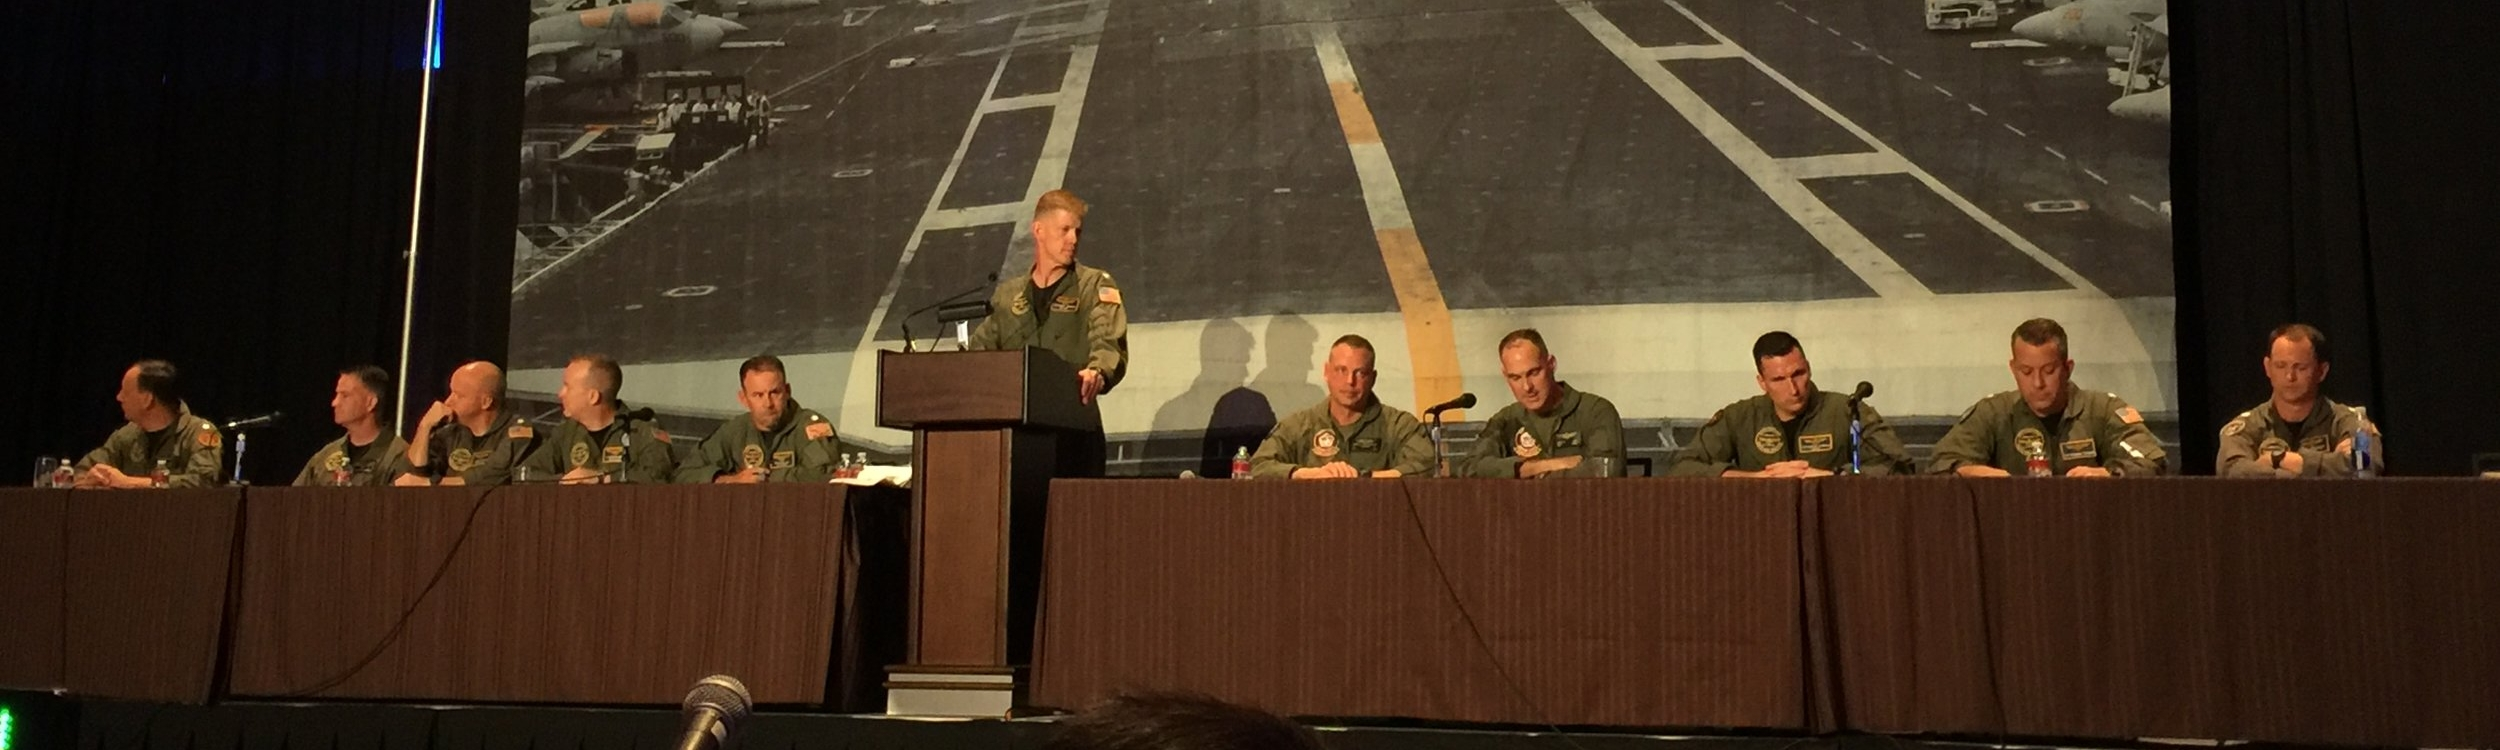 The OPNAV N98 Requirements Officers Panel was a highlight of Tailhook